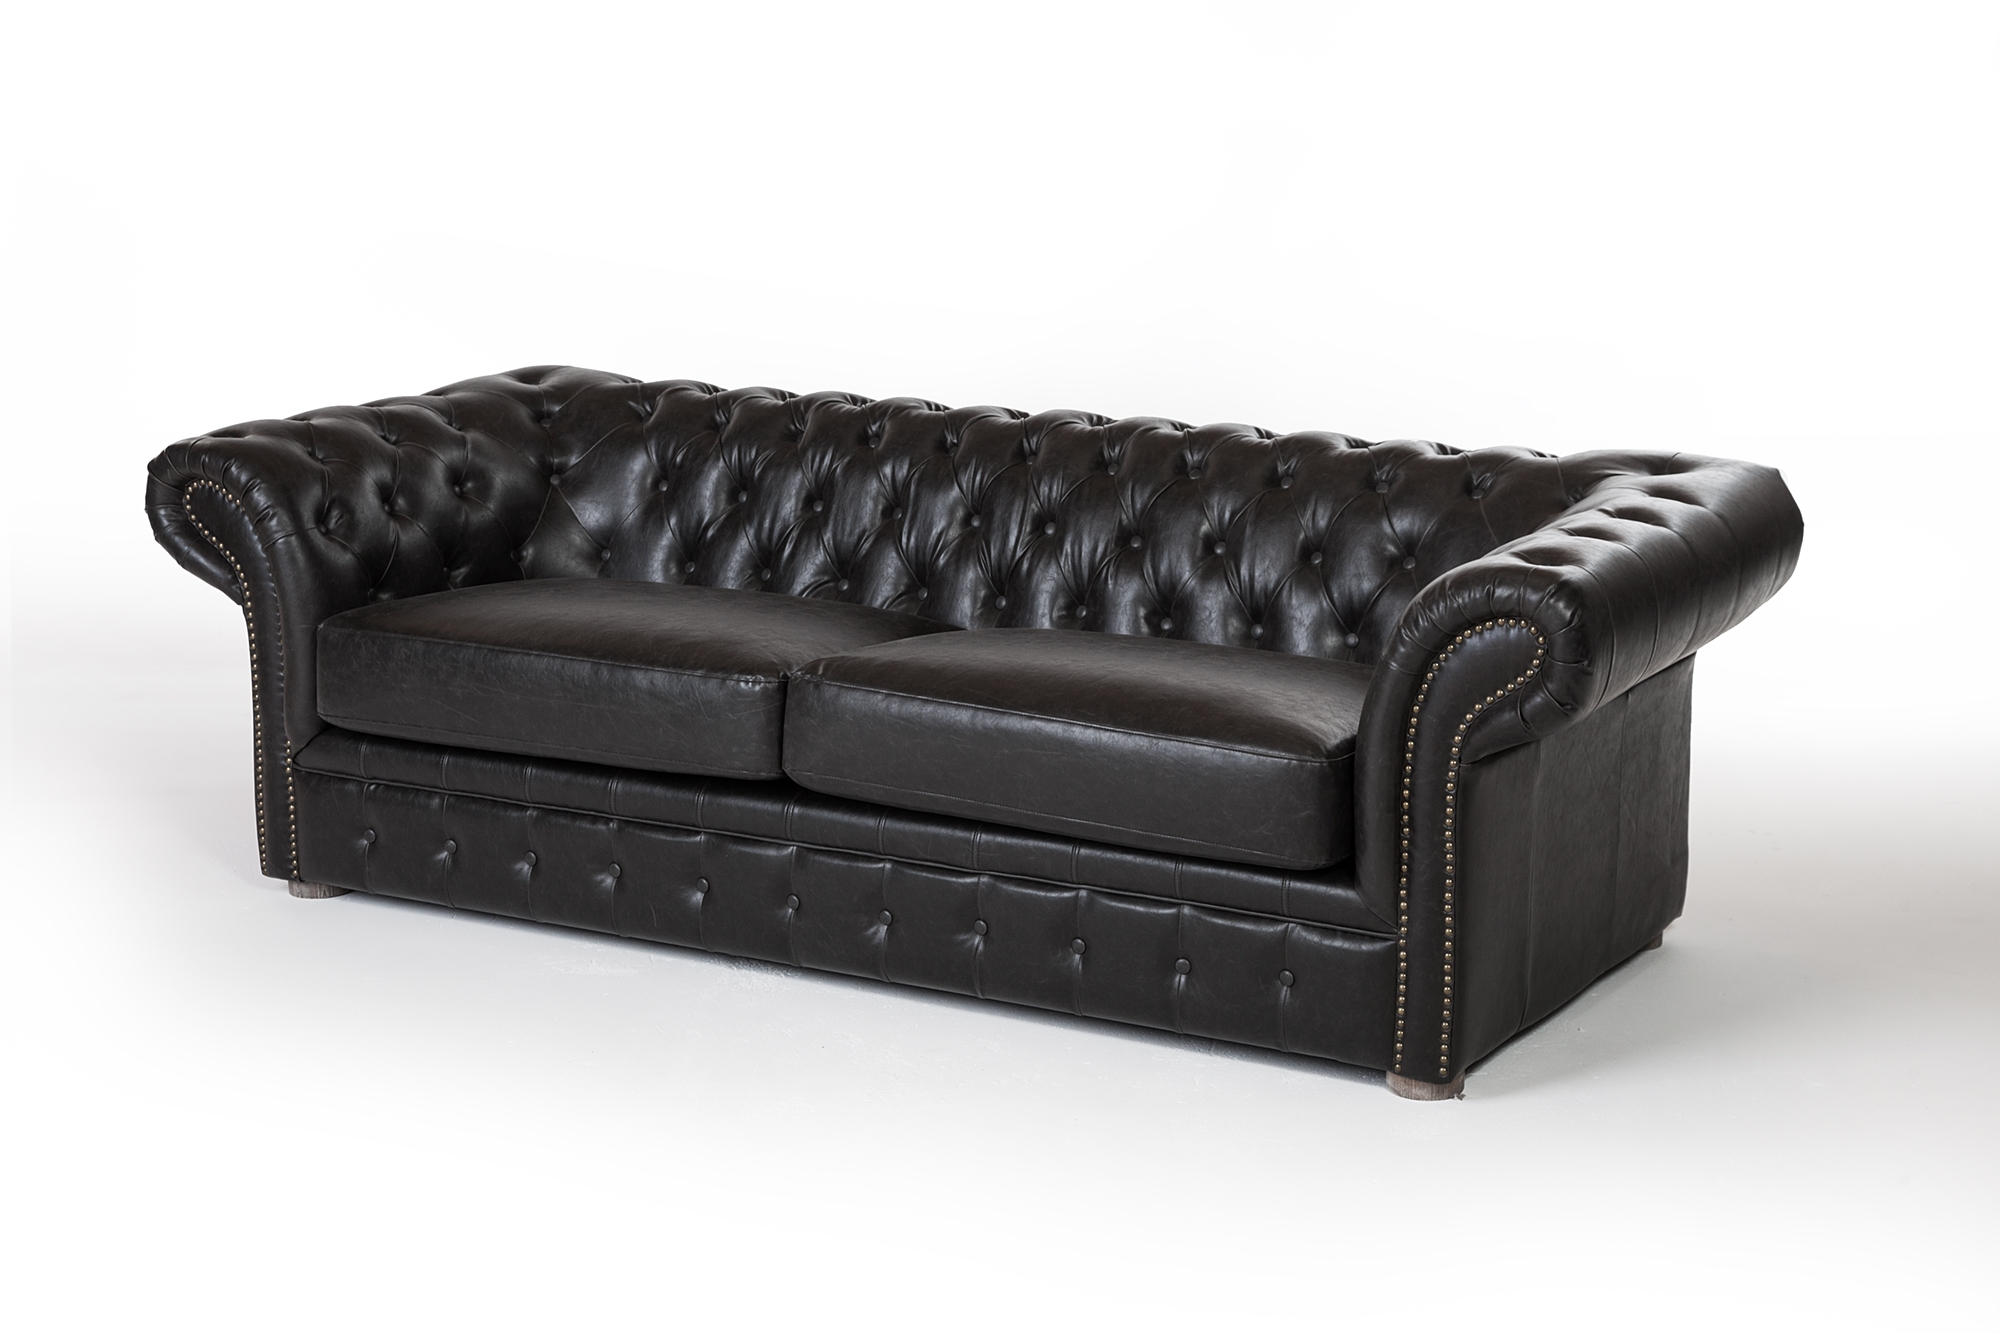 Chesterfield 91 Sofa Distressed Black Leather